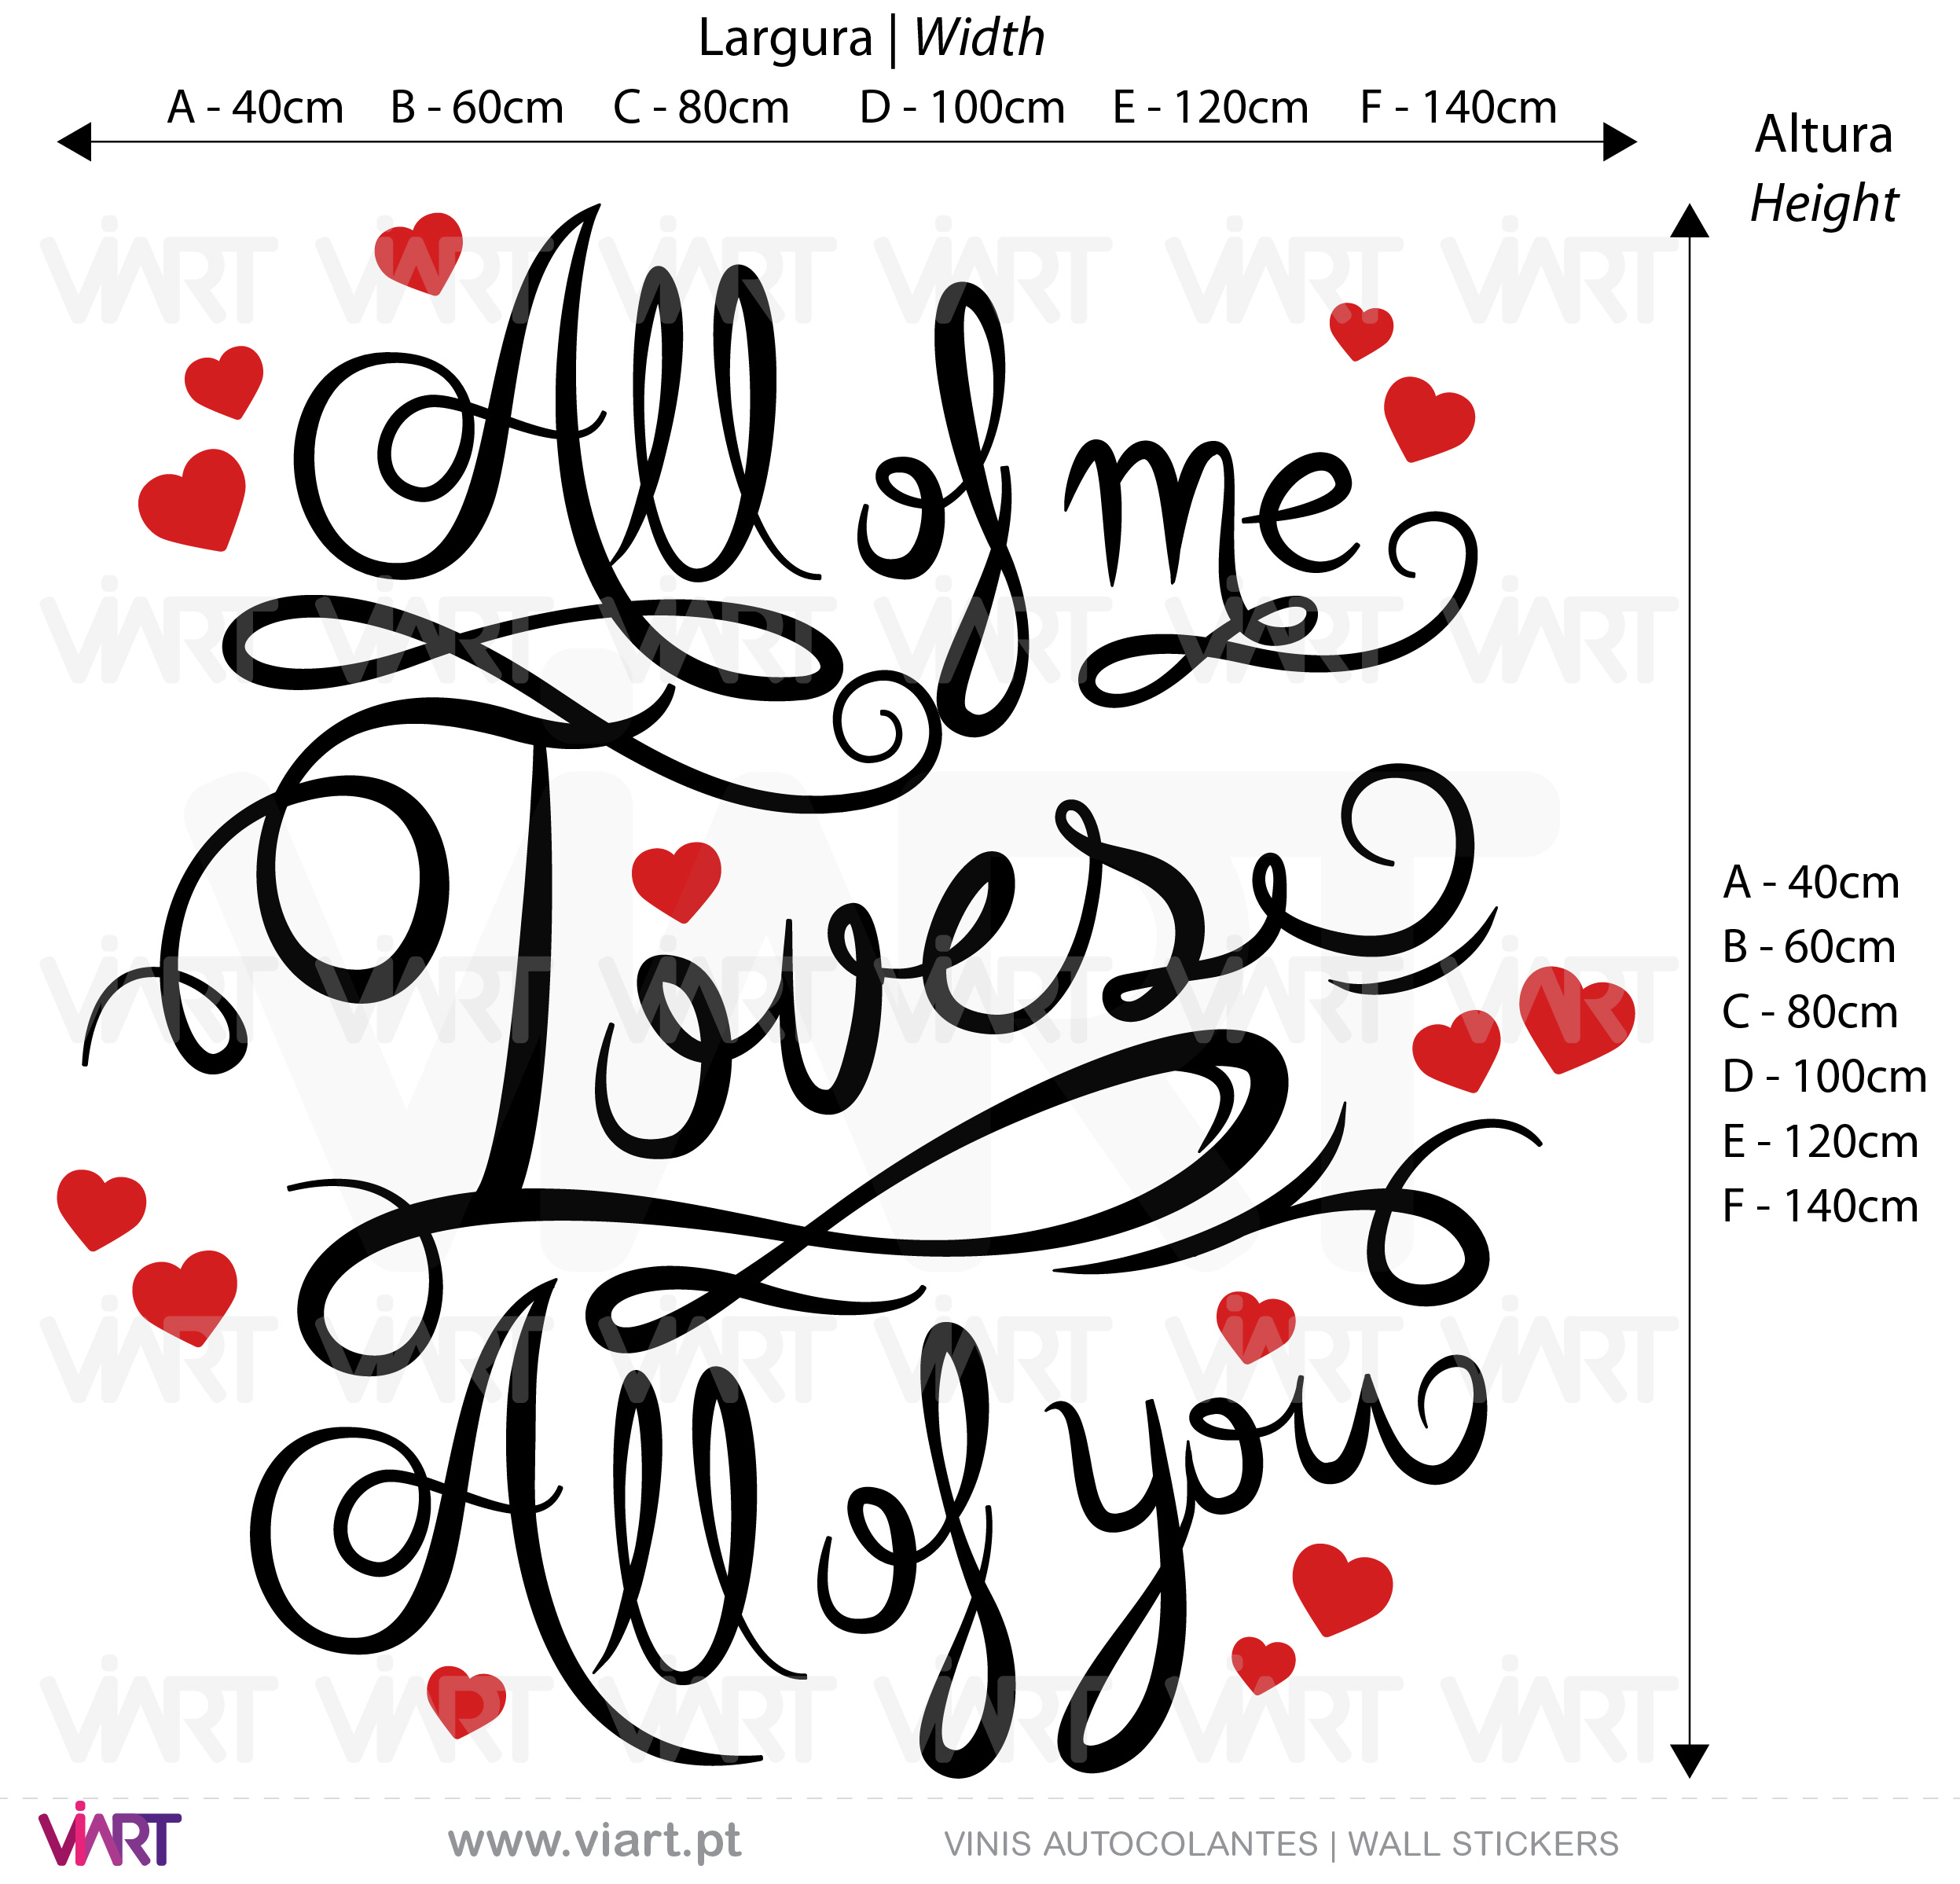 All of me Loves All of you! Viart - Wall Stickers - Decals